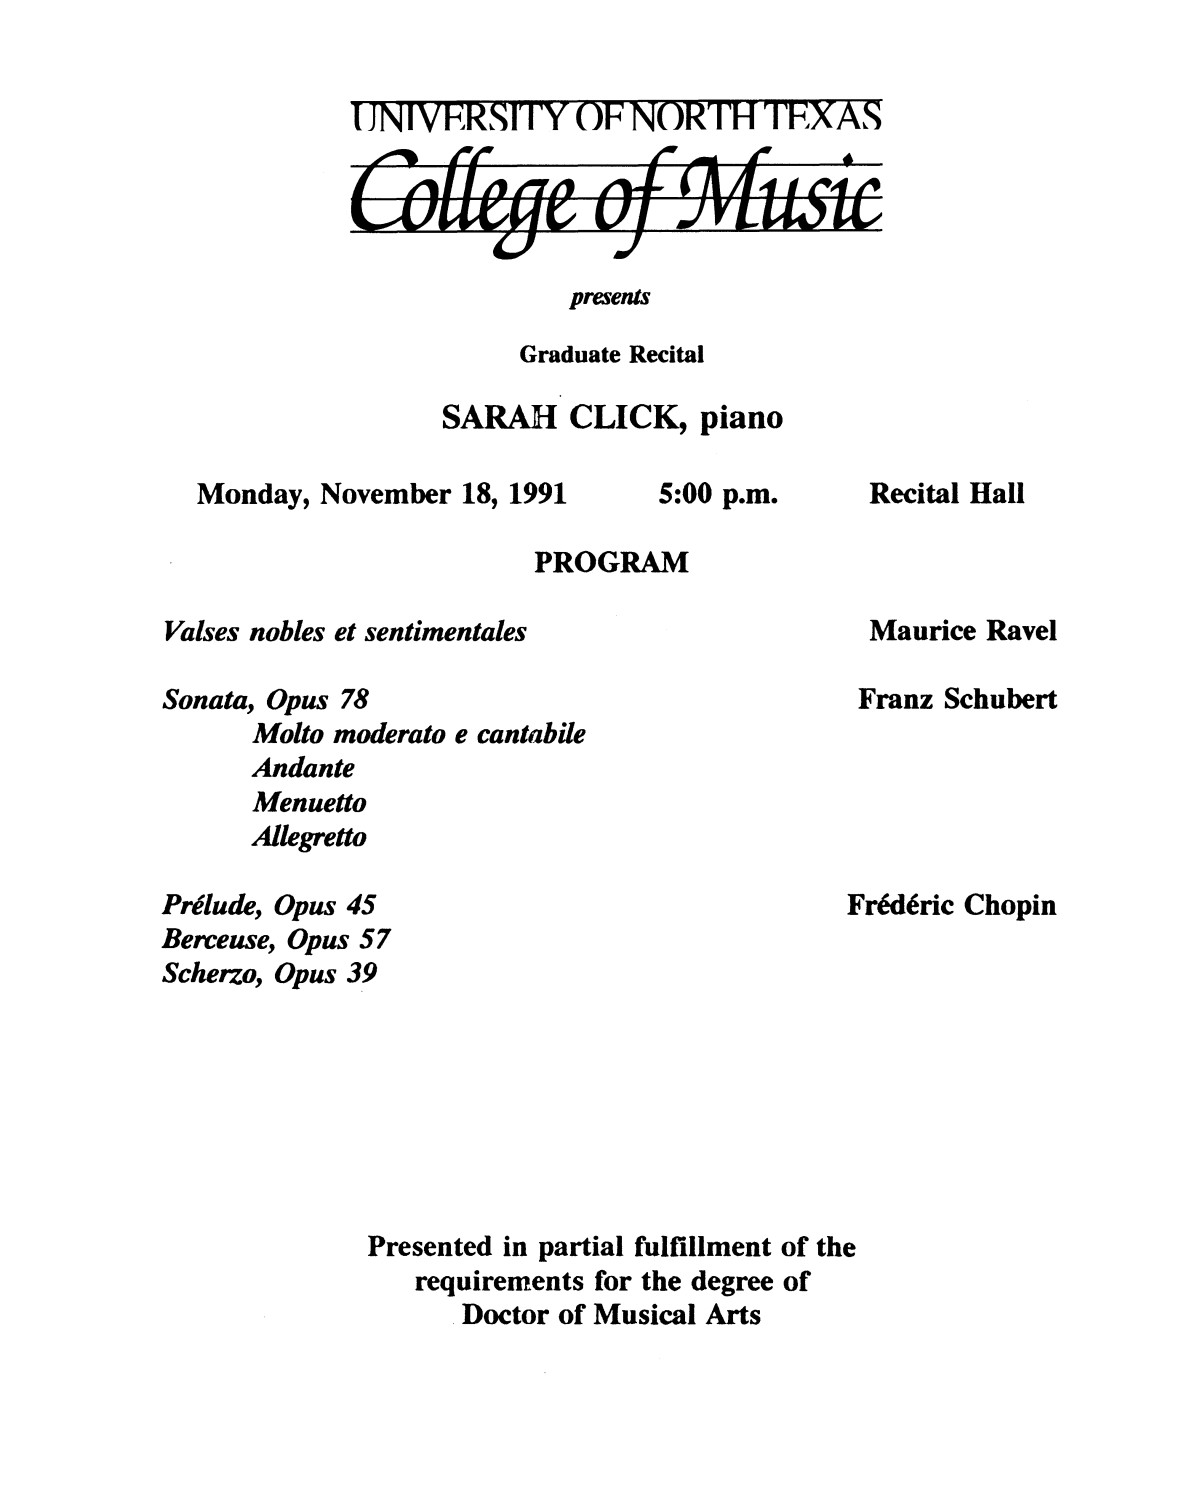 College of Music program book 1991-1992 Student Performances Vol. 2                                                                                                      [Sequence #]: 61 of 310